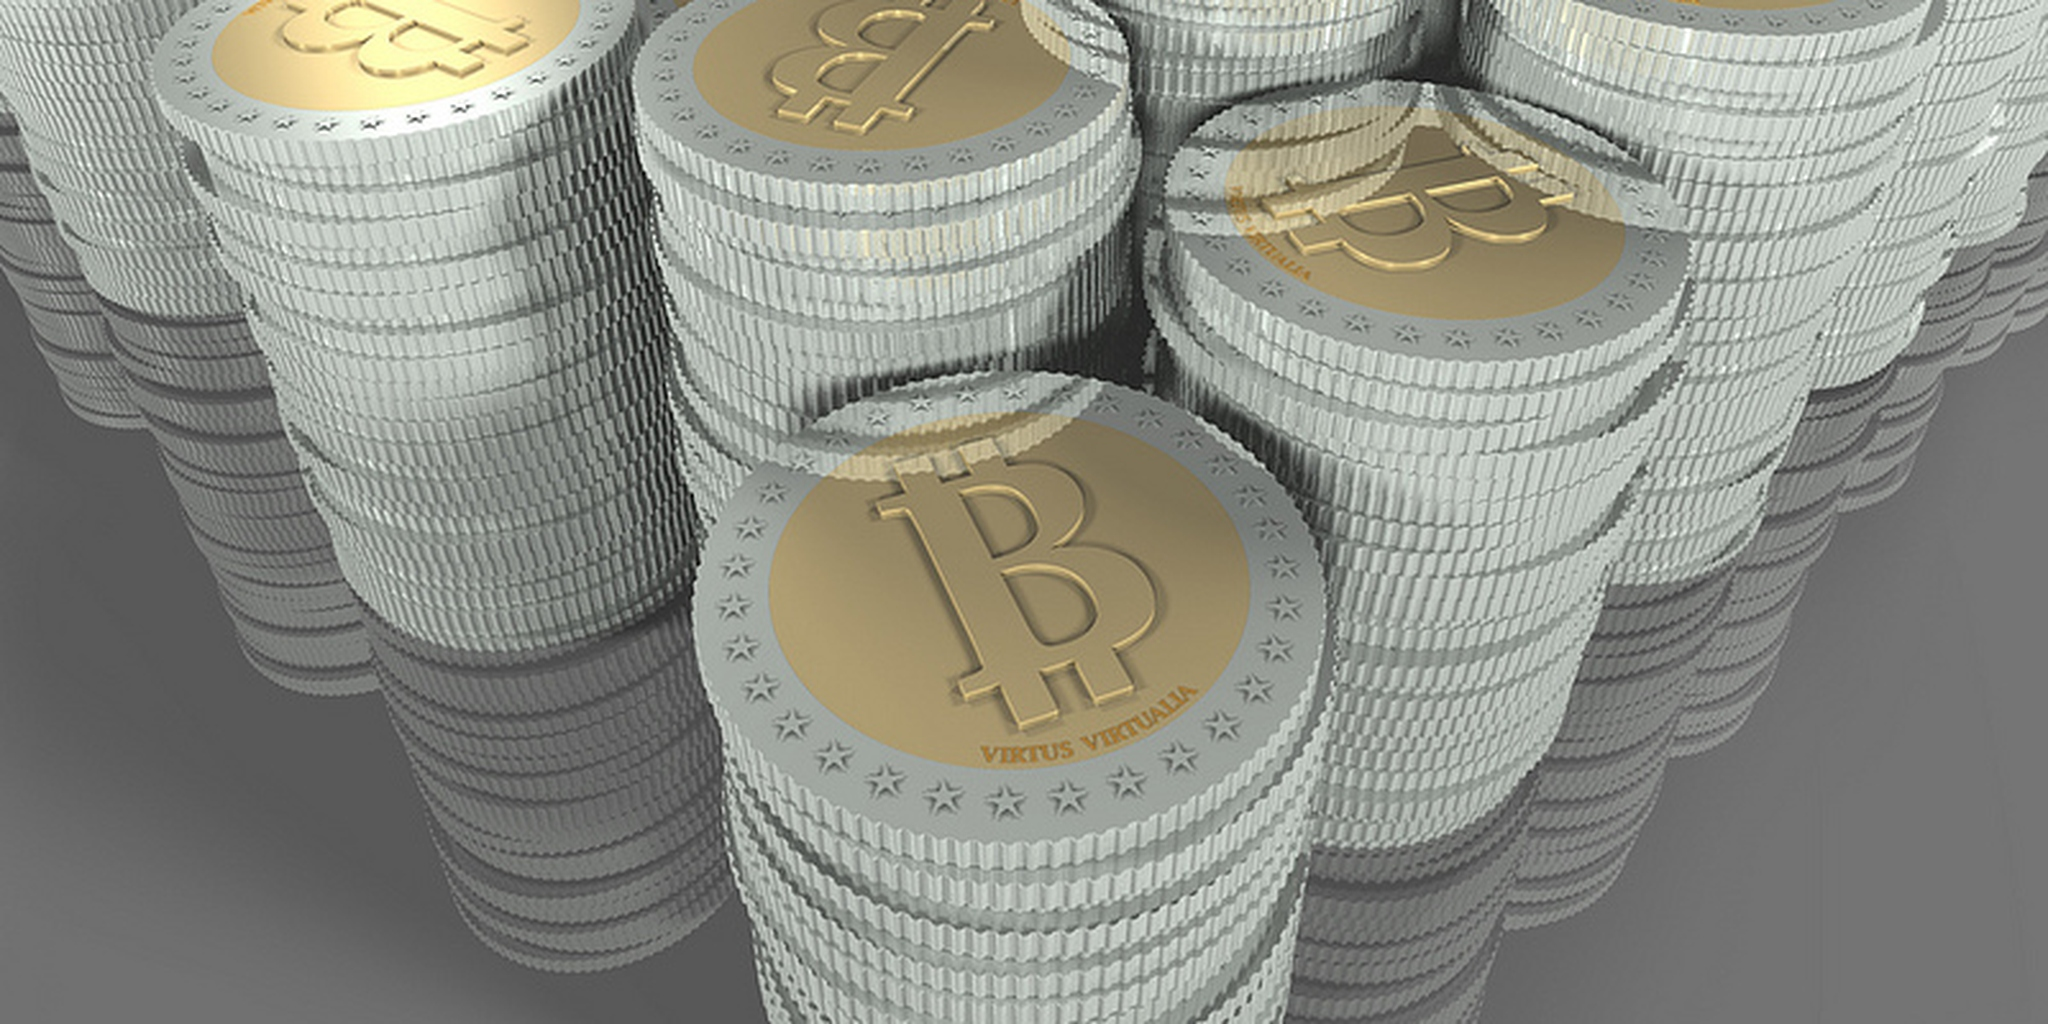 All sizes   bitcoins piles   Flickr - Photo Sharing!